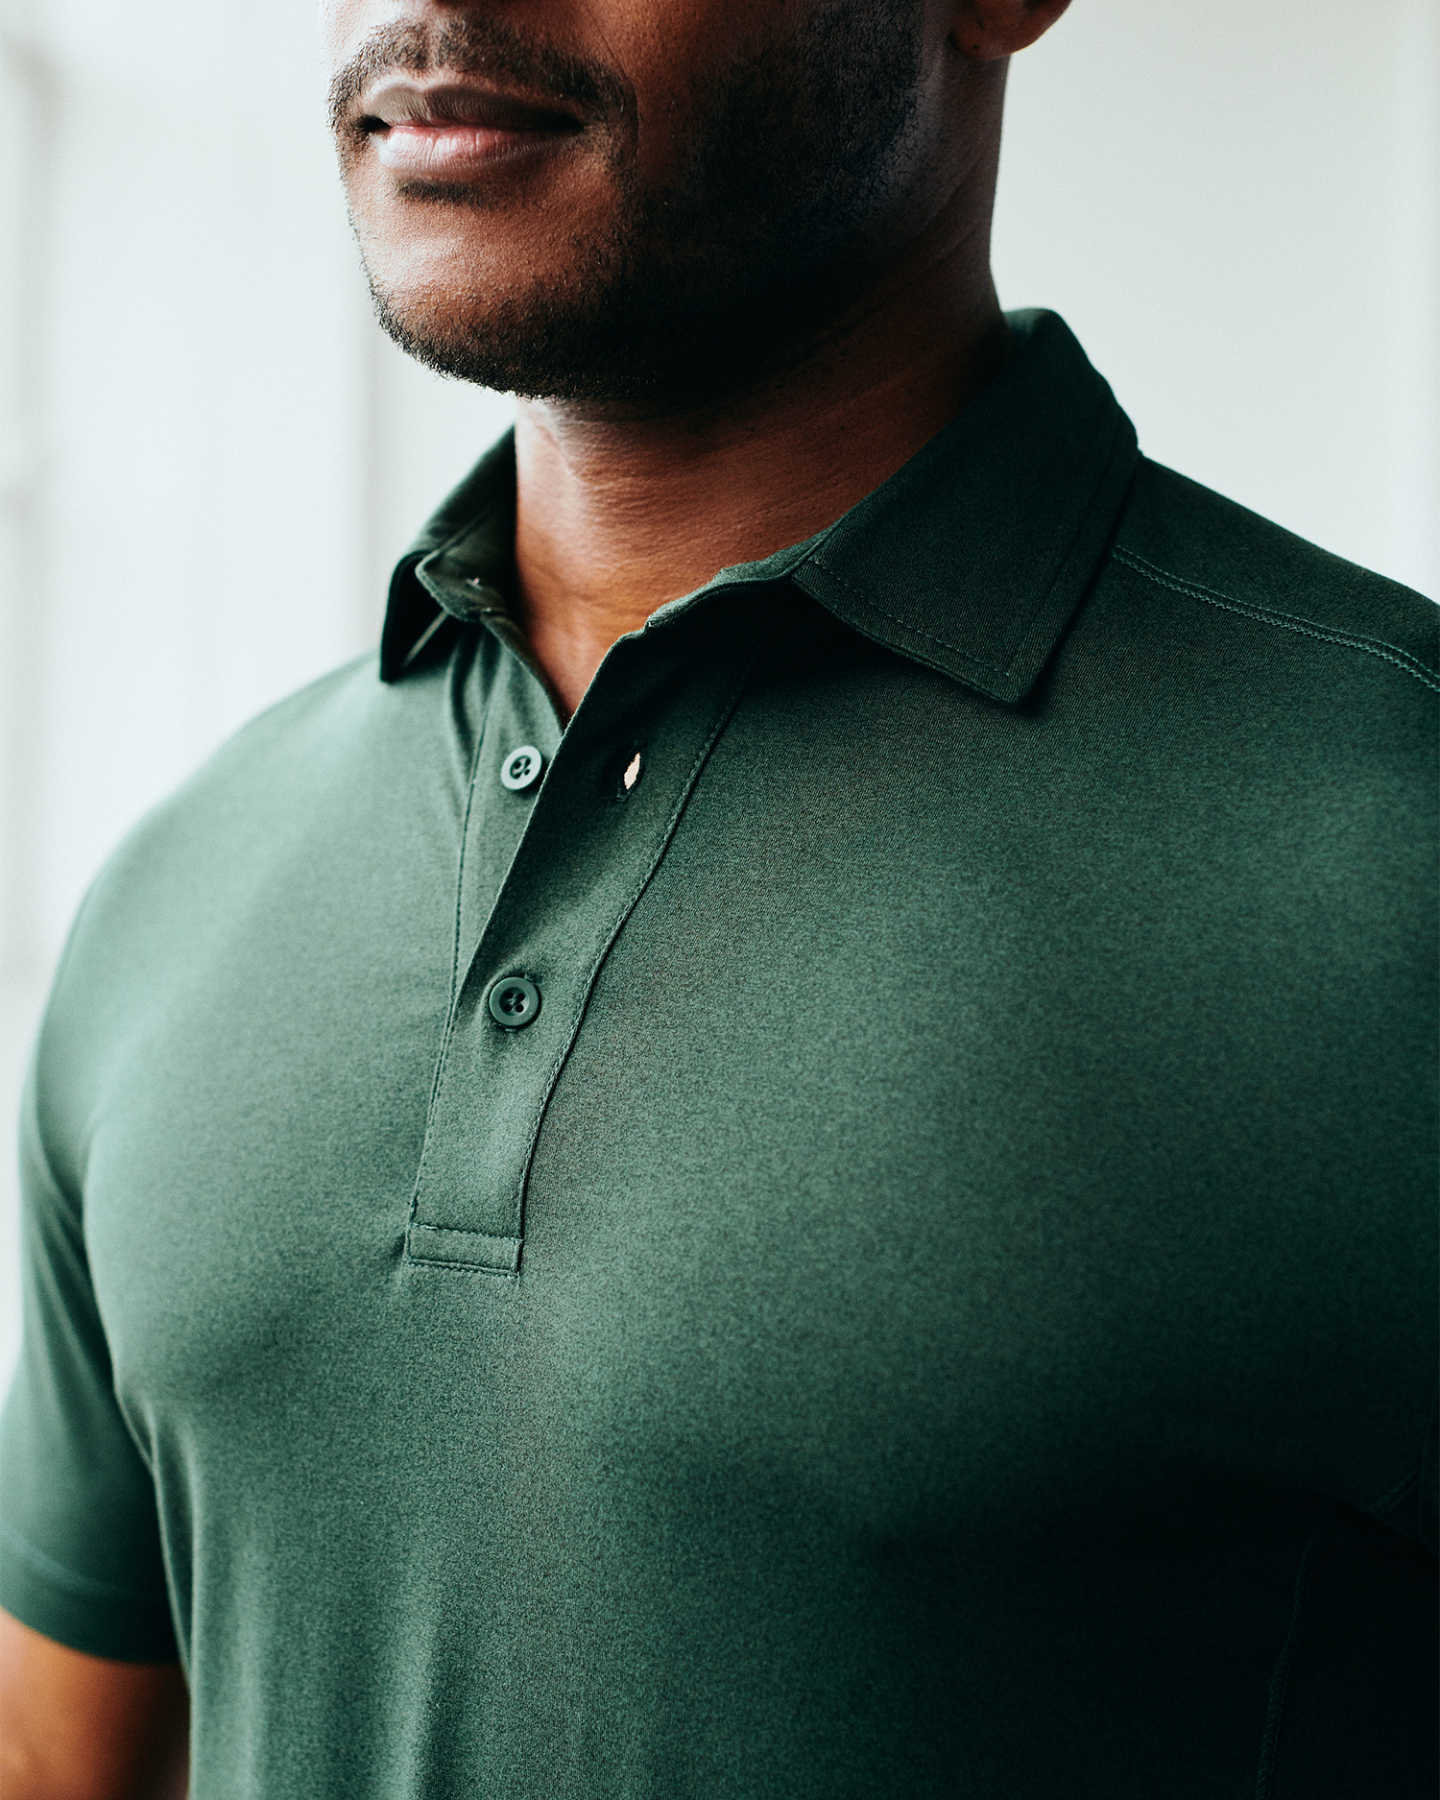 Flowknit Ultra-Soft Performance Polo - Olive - 5 - Thumbnail